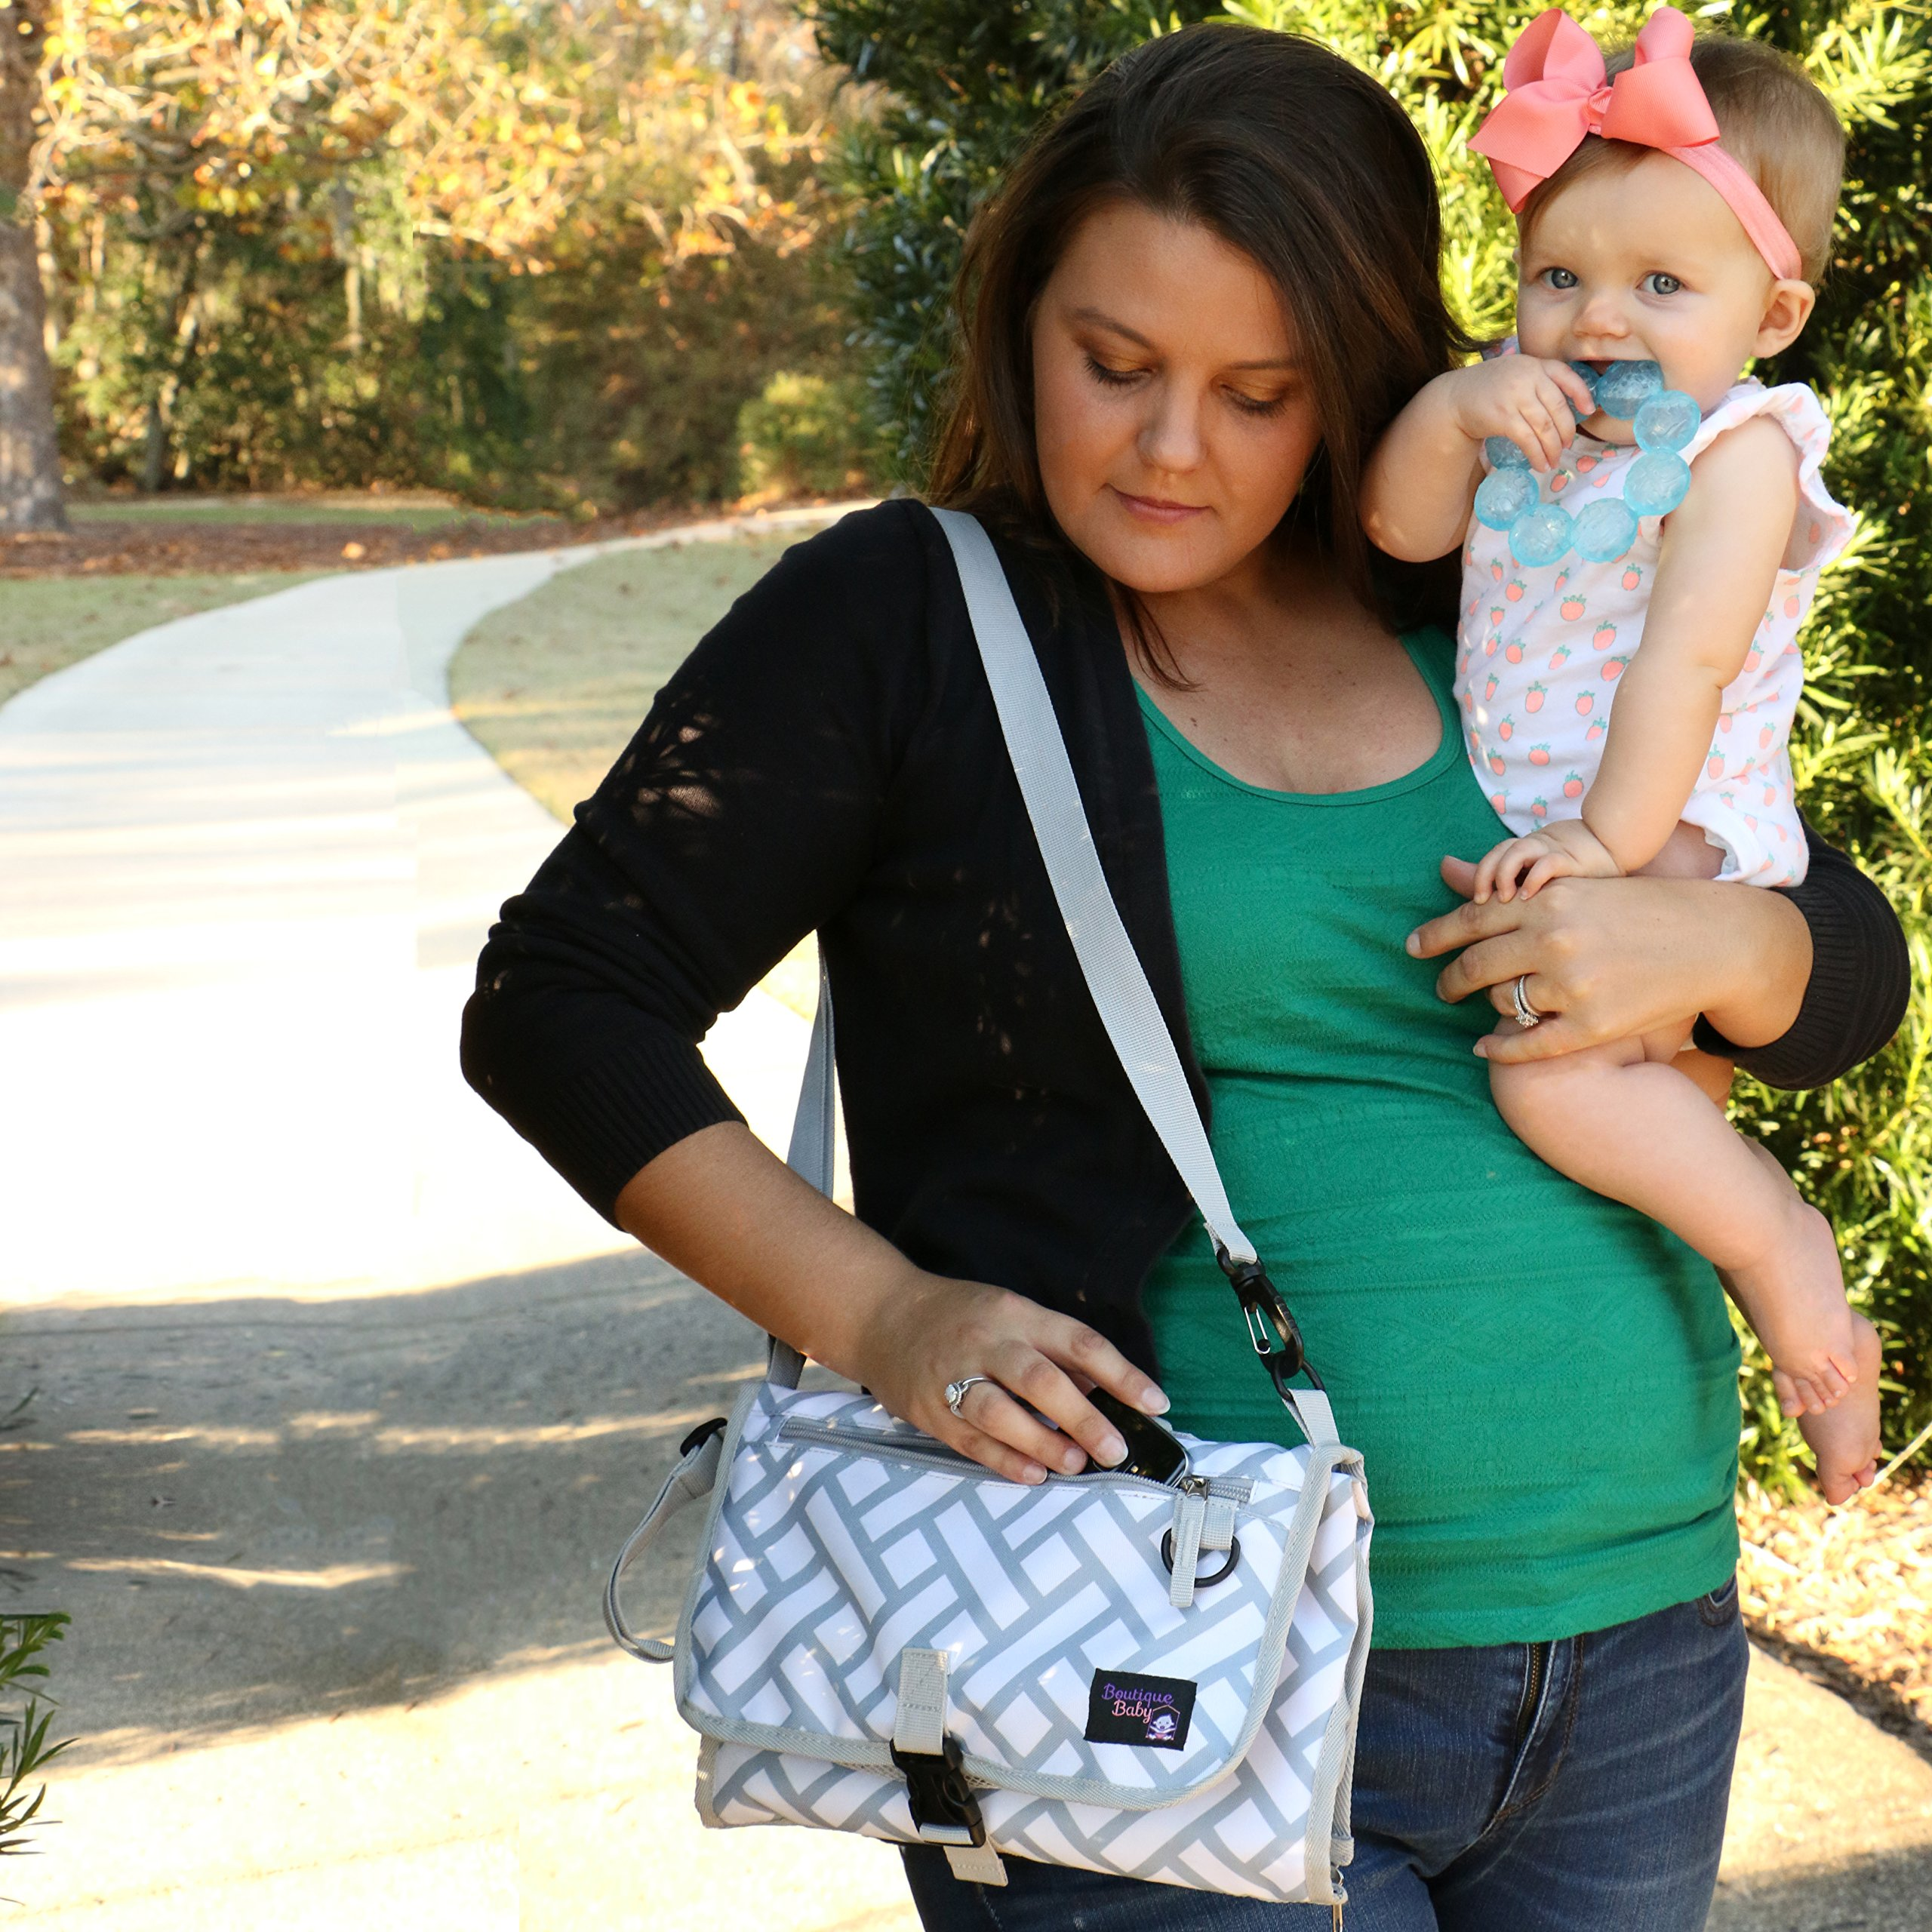 Baby Changing Pad By Boutique Baby Portable Diaper Changing Pad Station Waterproof Extra Long  Travel Clutch by Boutique Baby (Image #4)